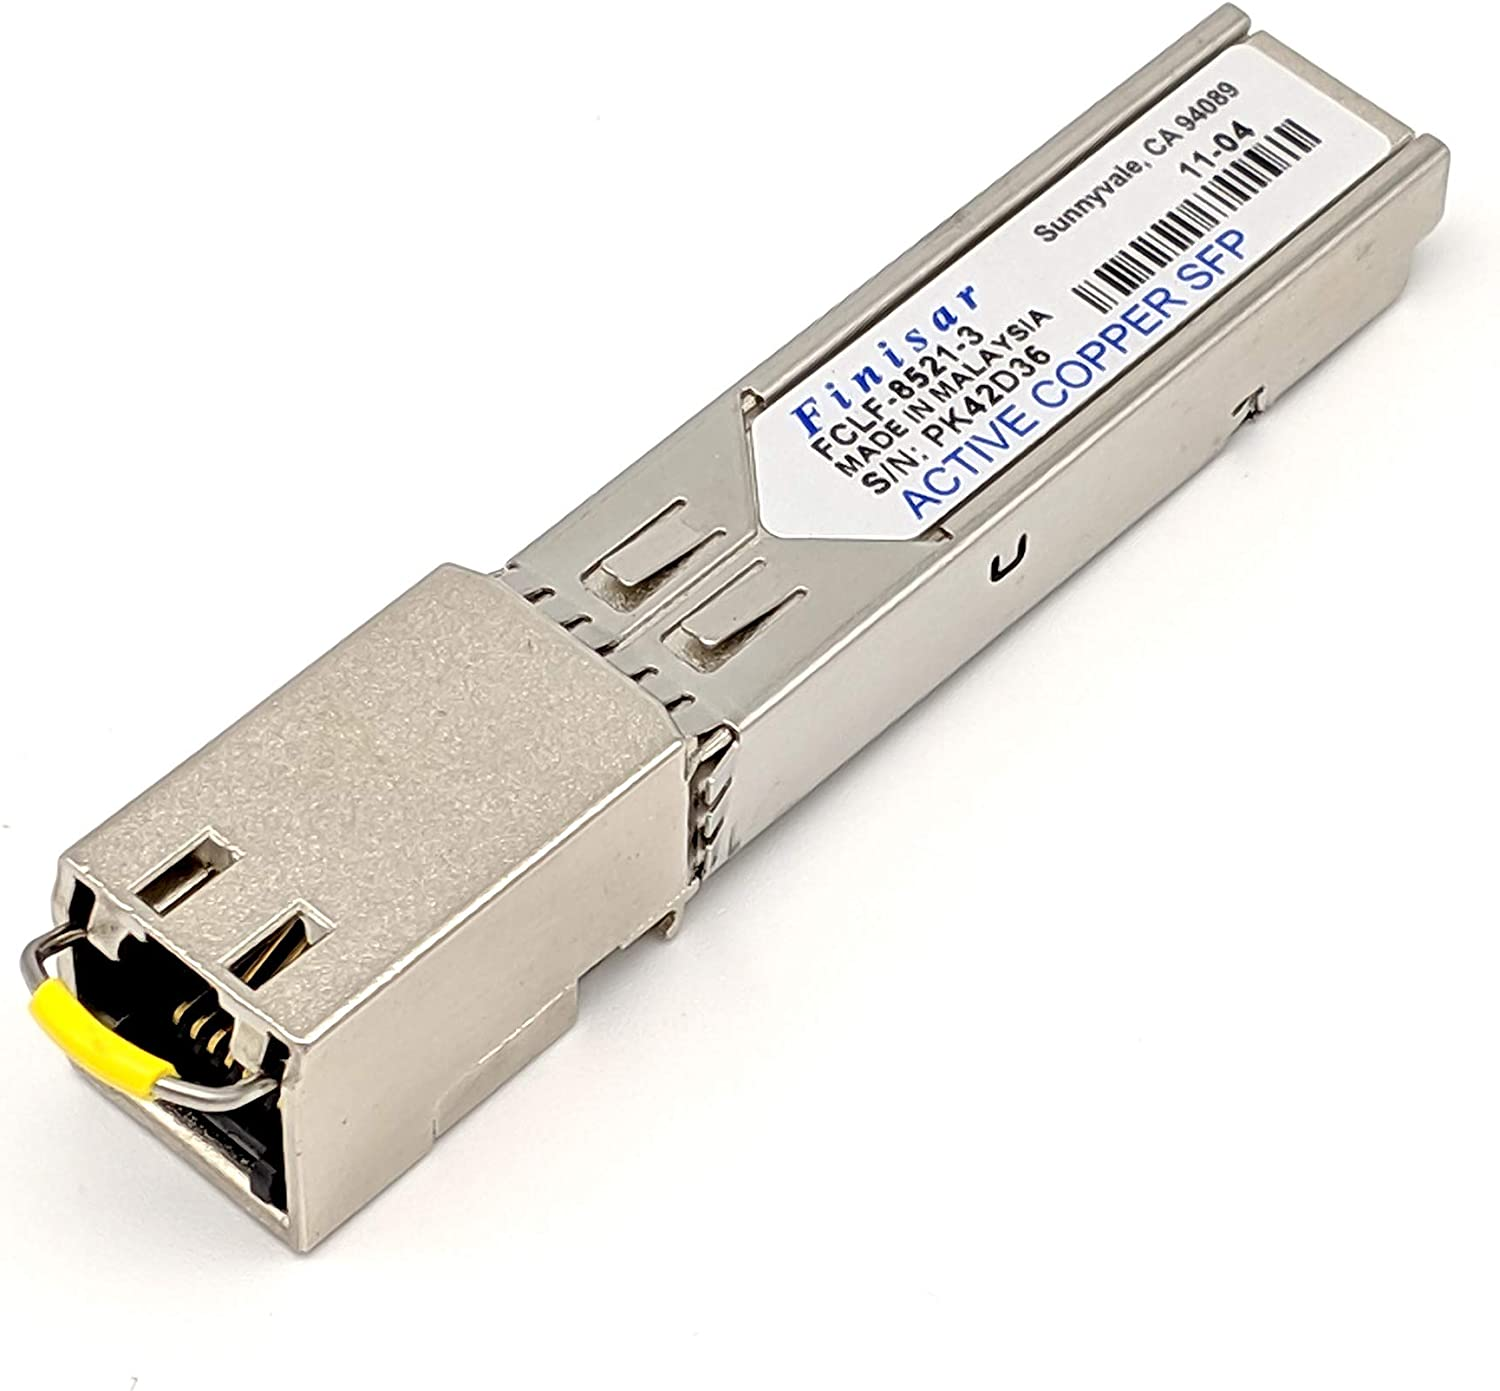 Amazon Com Finisar Fclf 8521 3 1000base T Sfp Transceiverrohs Compliant Computers Accessories